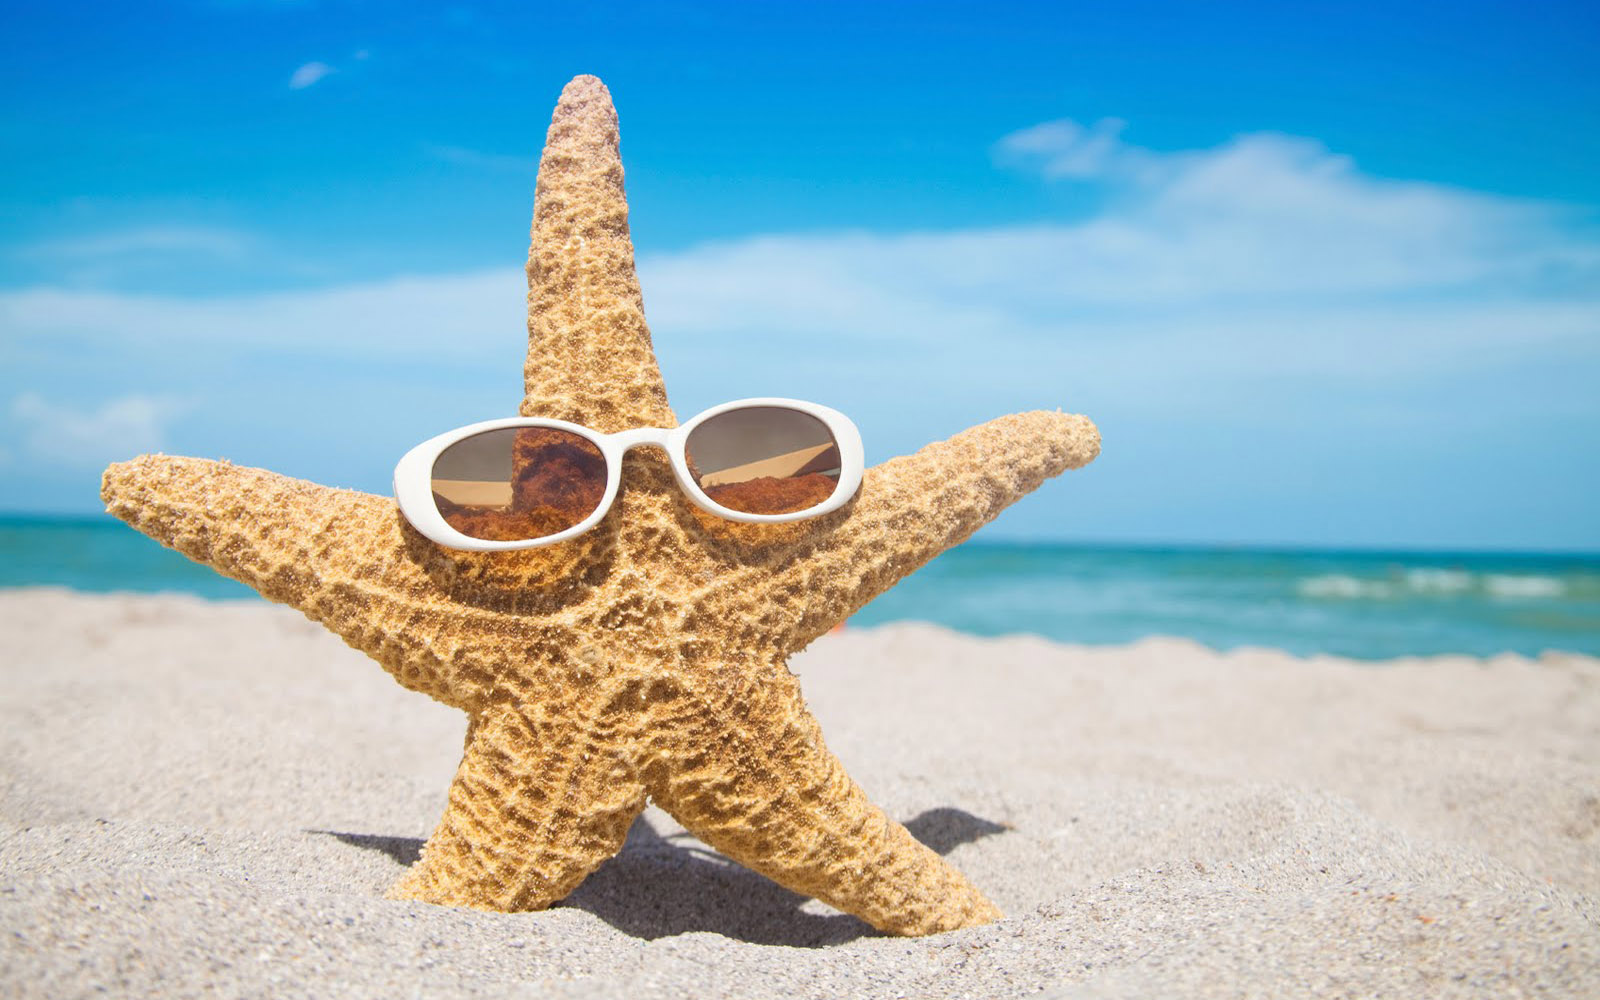 Myrtle Beach Mercedes >> A starfish with sunglasses in the sand